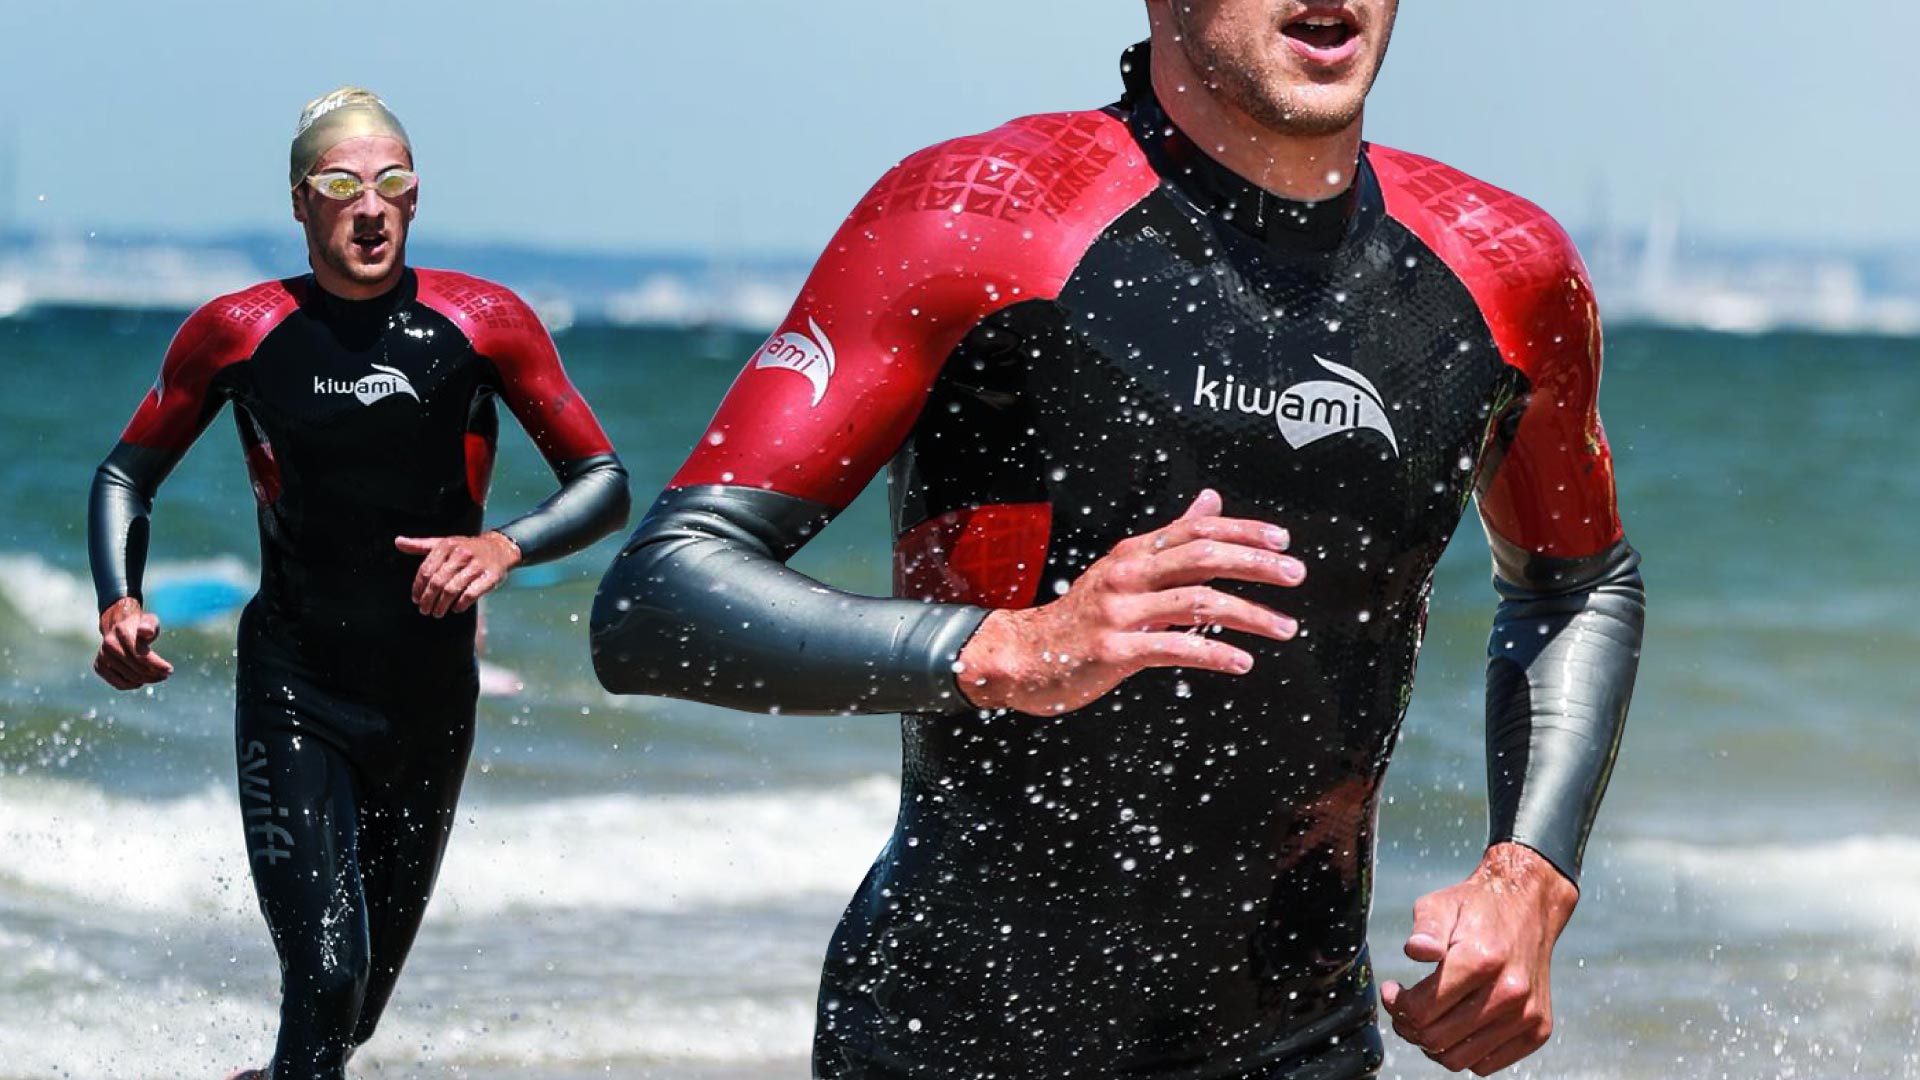 KiWAMi SWIFT Triathlon Neoprenanzug | Wetsuit